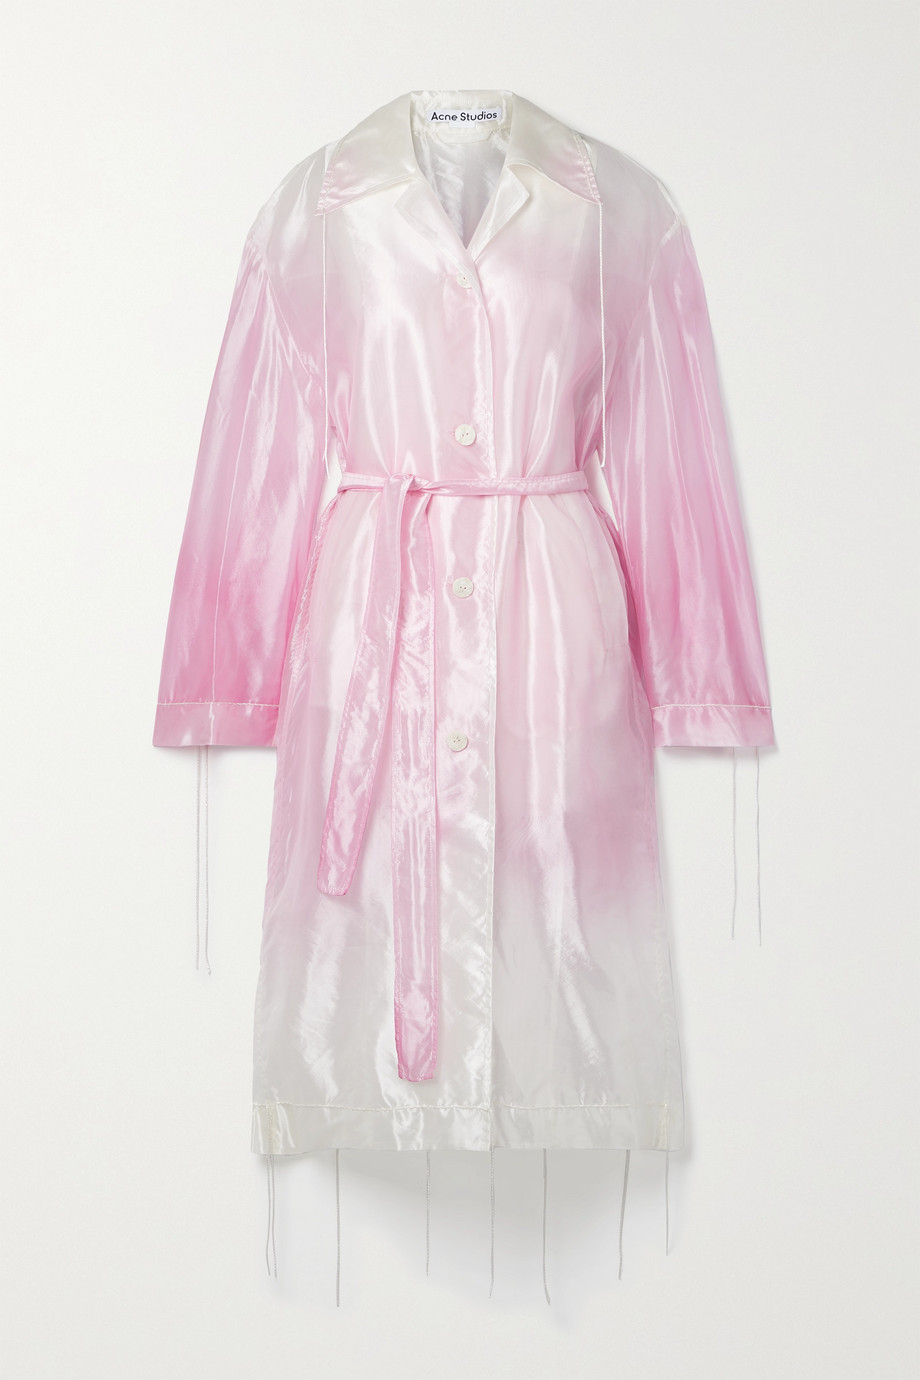 Acne Studios Belted ombré organza trench coat